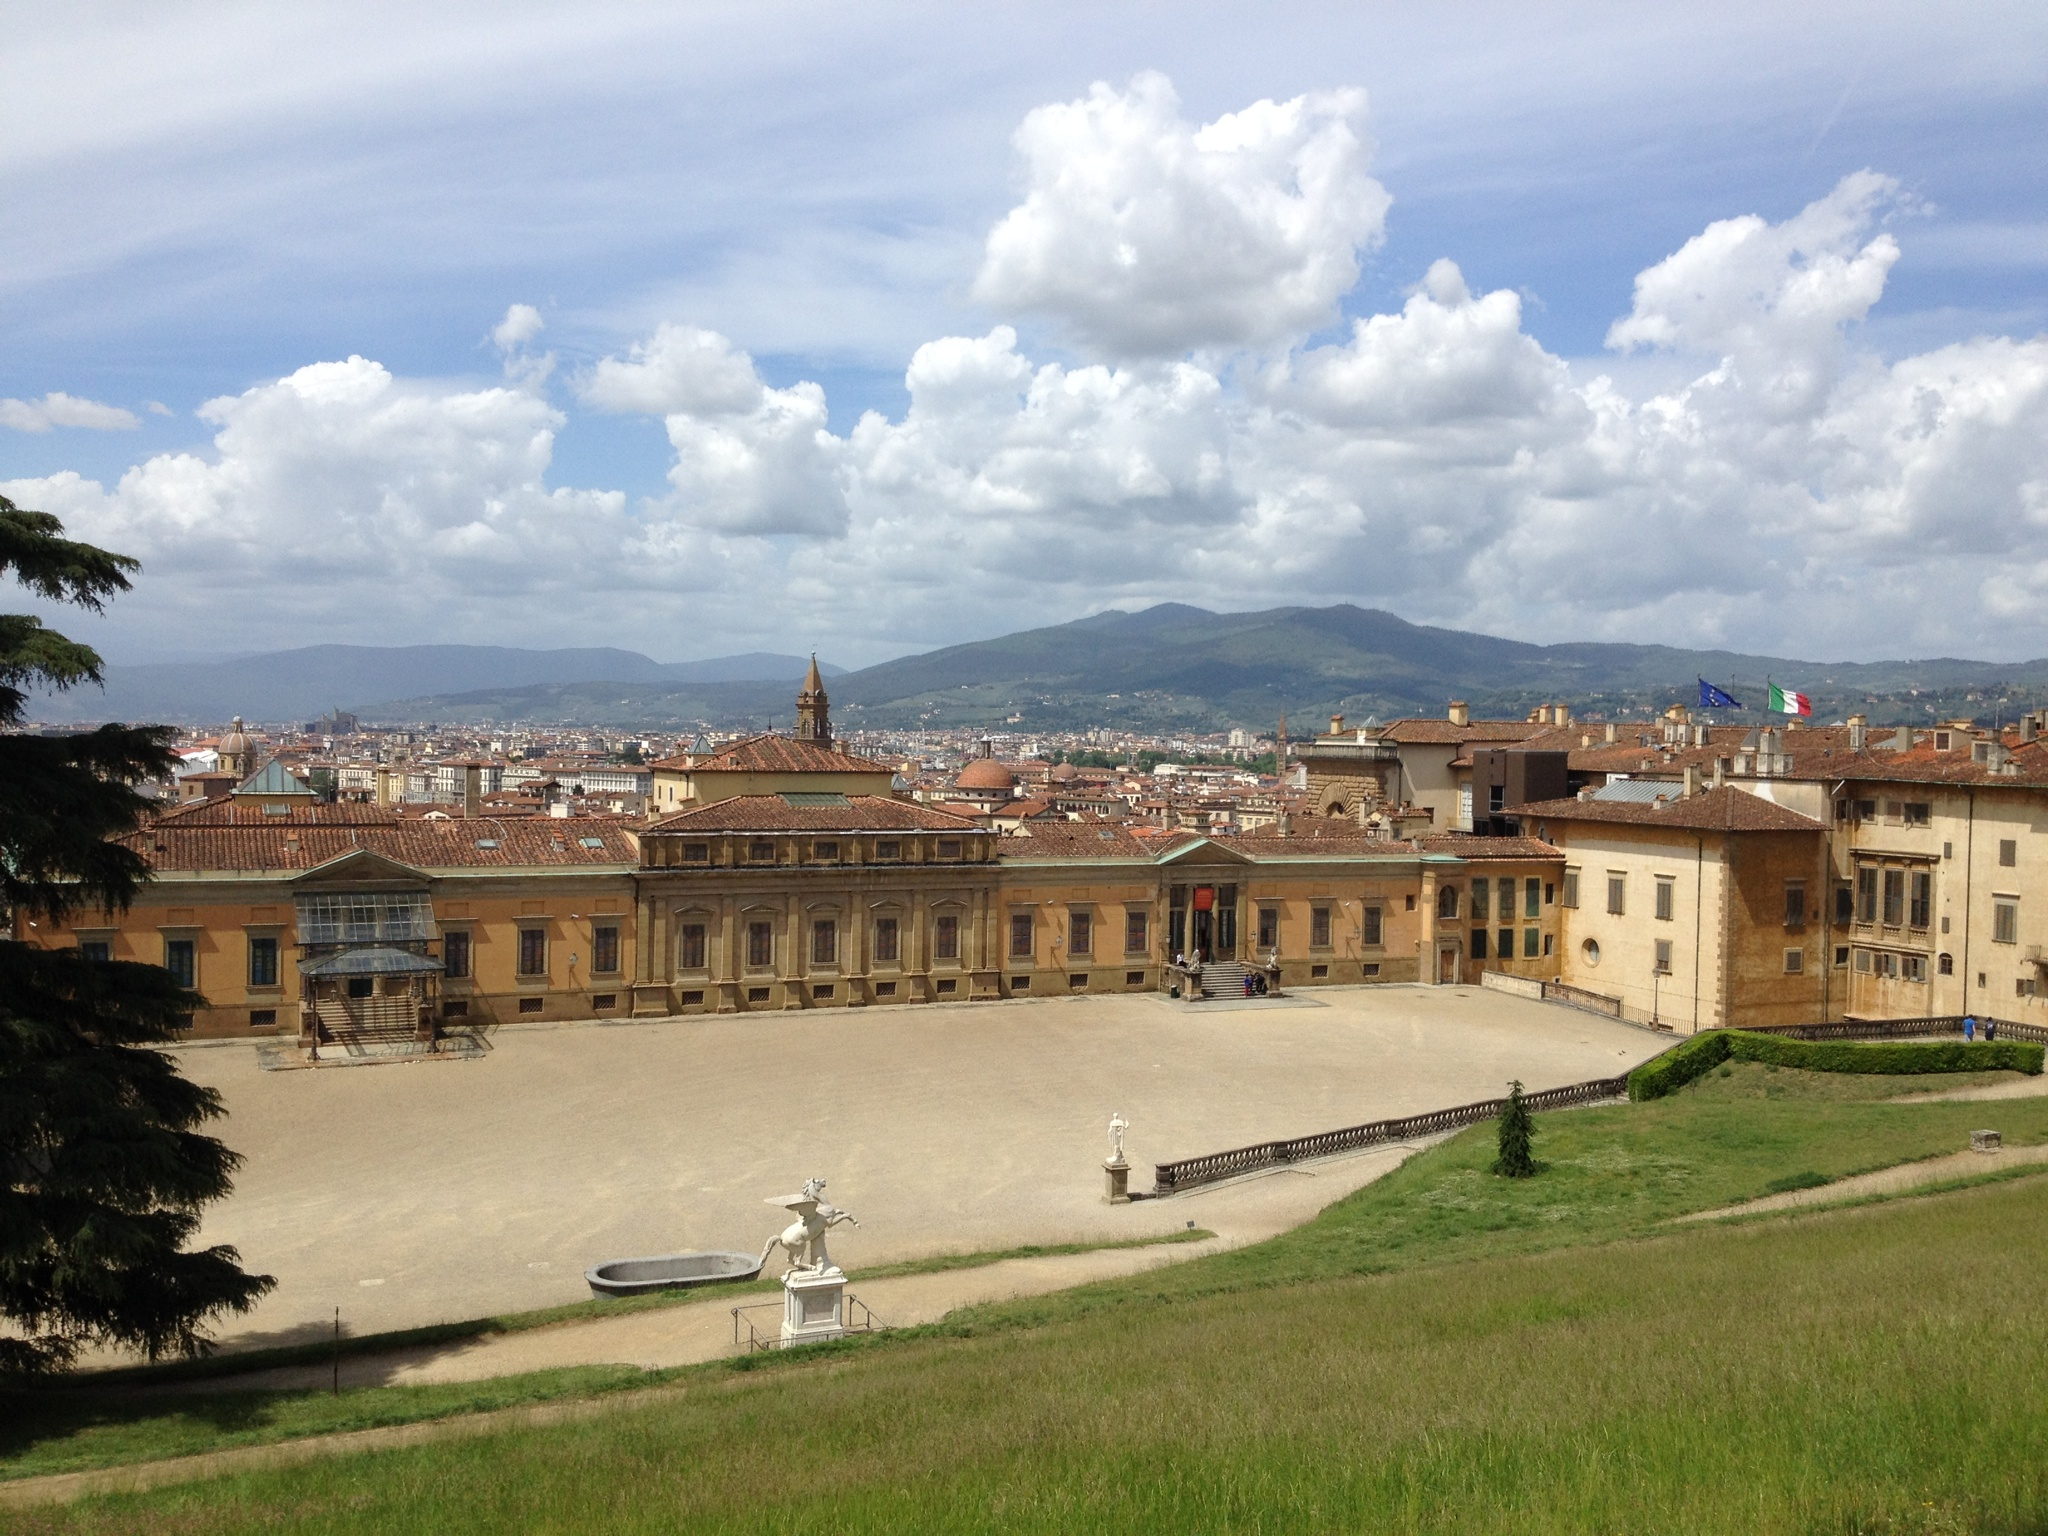 Pitti Palace and gardens